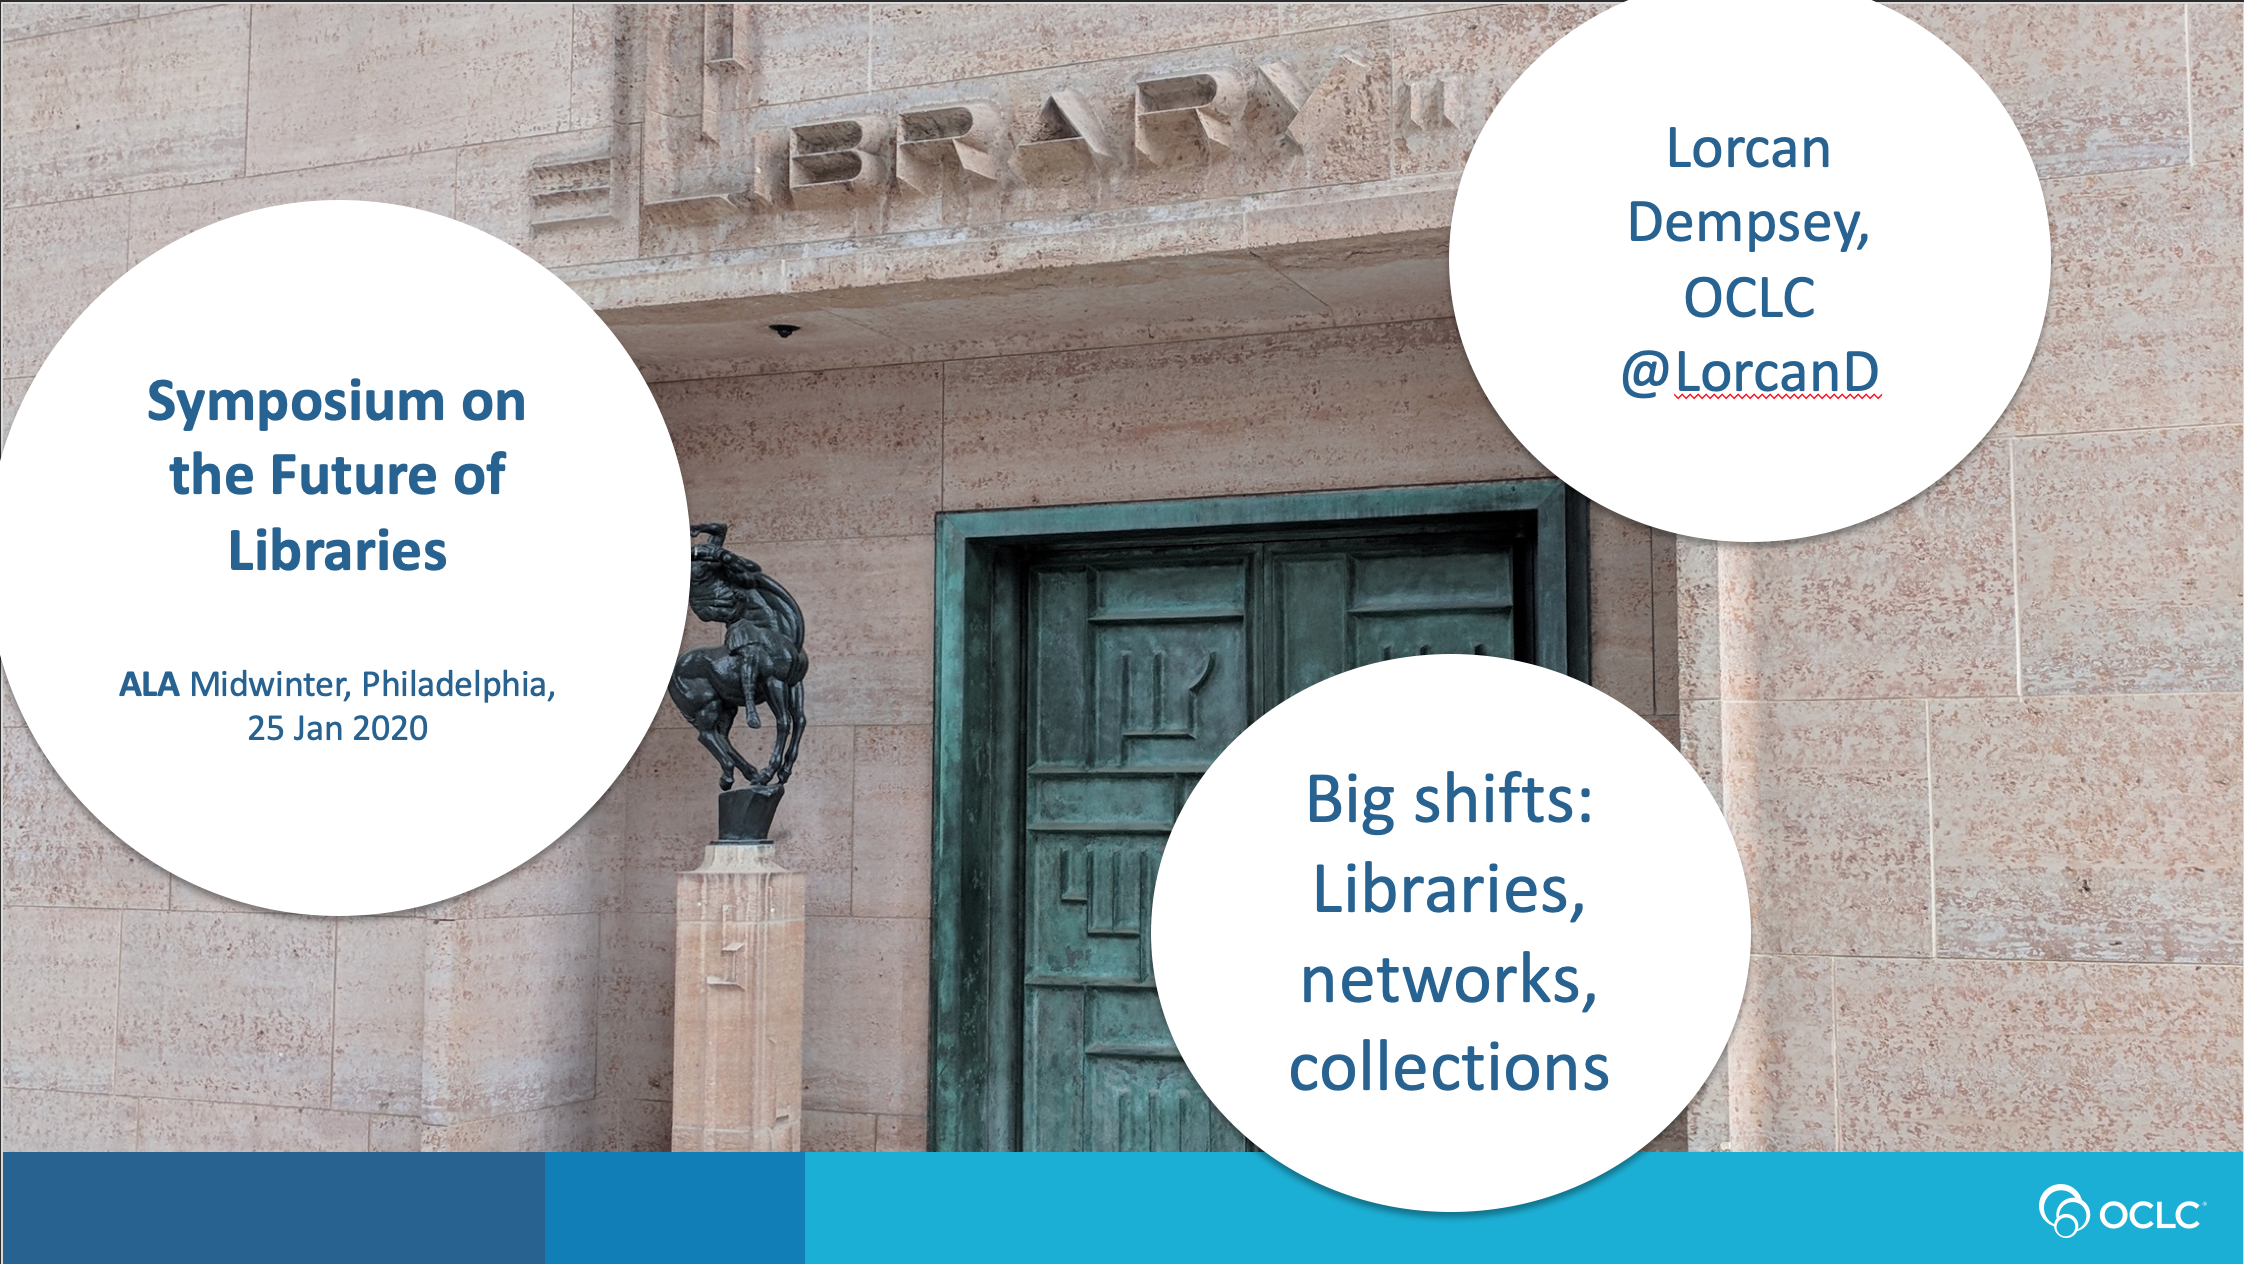 Big Shifts: Libraries, Collections, Networks